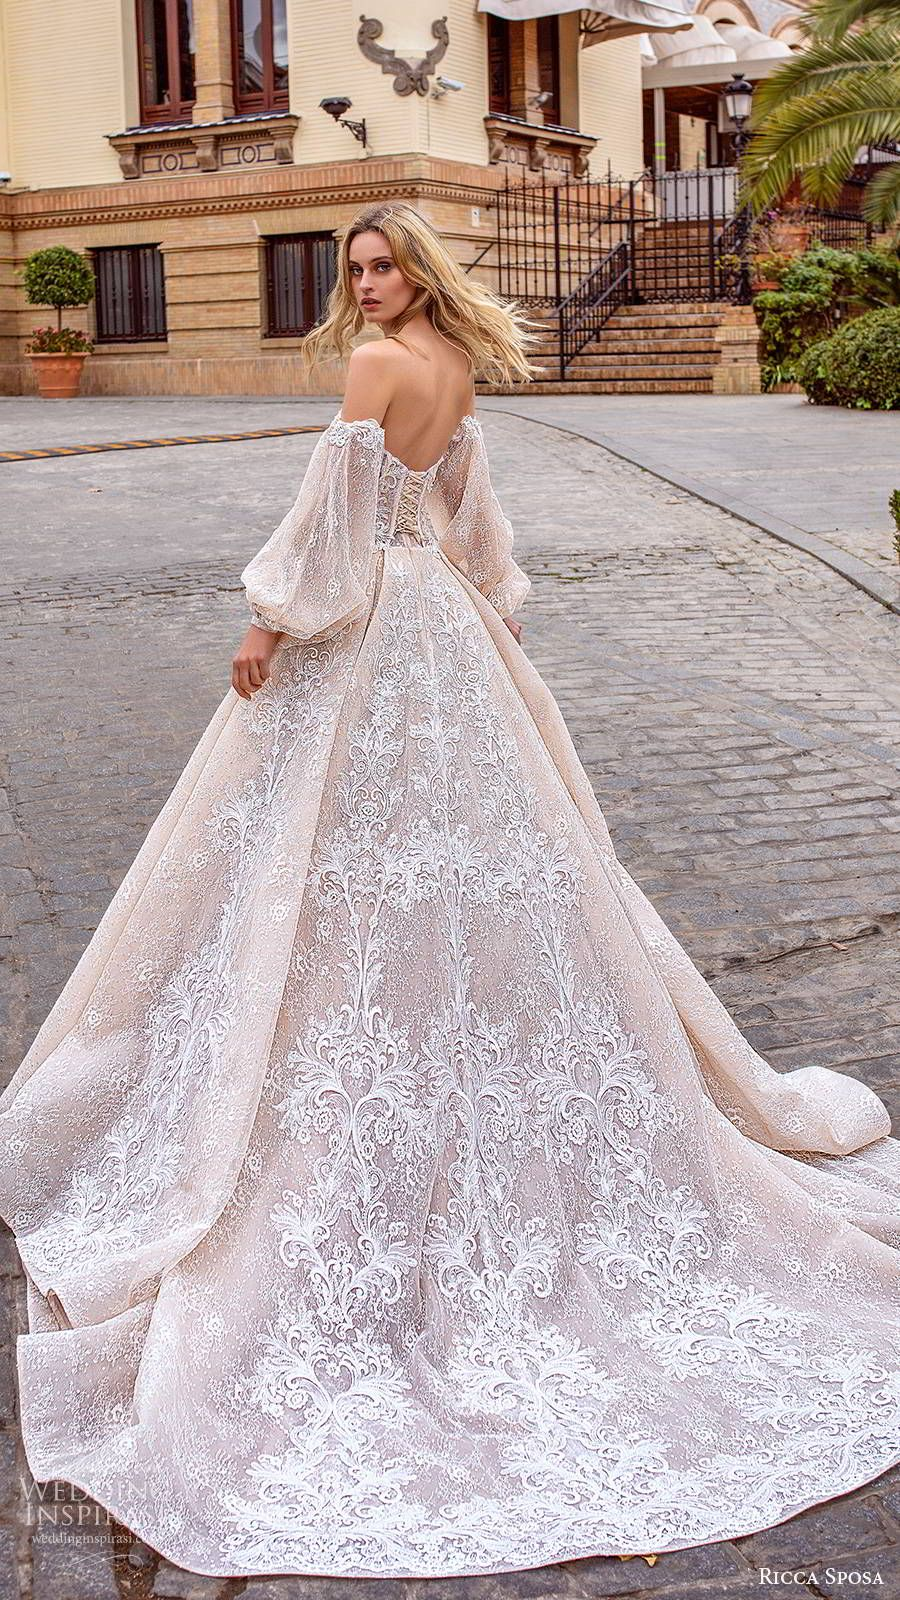 ricca sposa 2019 bridal off shoulder semi sweetheart fully embellished romantic ball gown a line wedding dress chapel train blush color (1) bv -- Ricca Sposa 2020 Wedding Dresses | Wedding Inspirasi #wedding #weddings #bridal #weddingdress #weddingdresses #bride #fashion ~